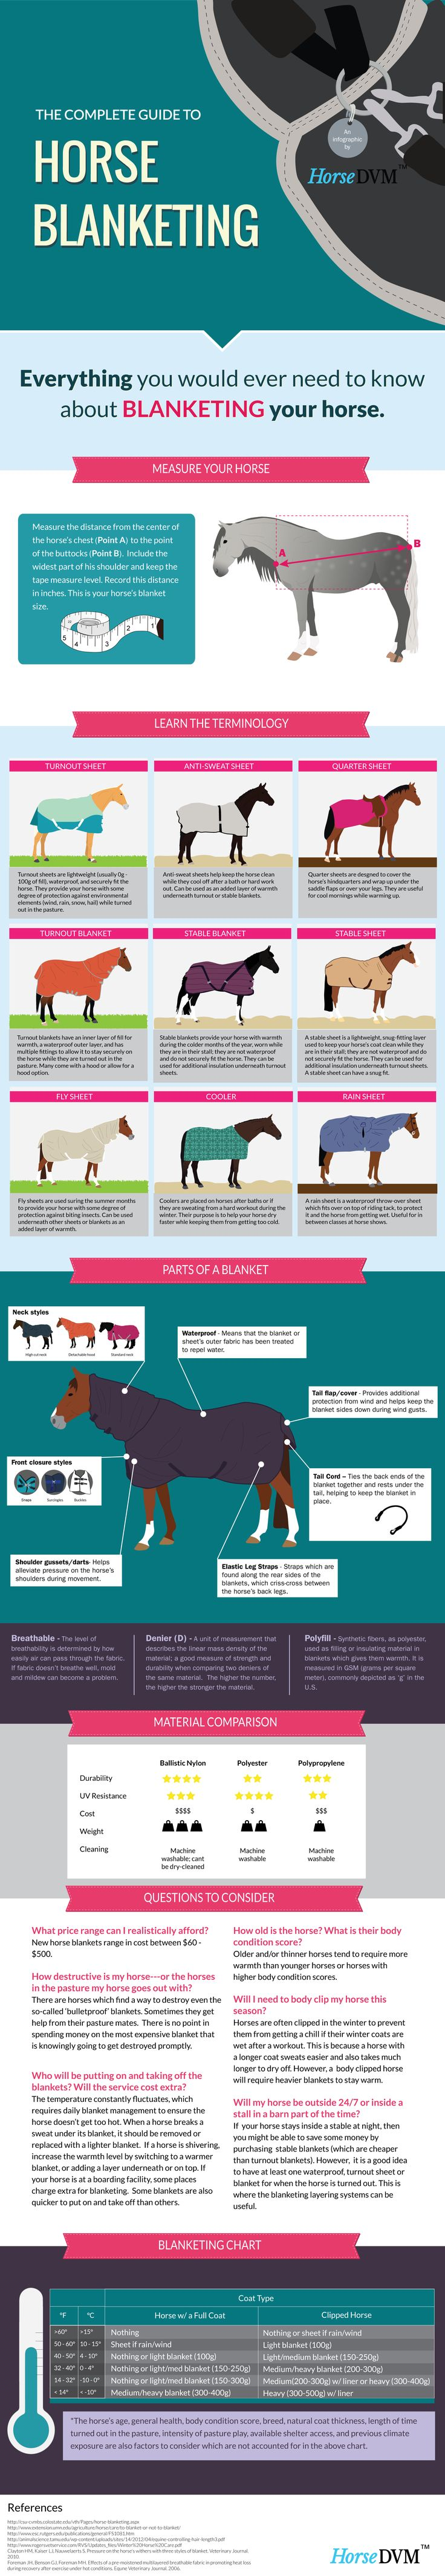 HorseDVM - The Complete Guide to Horse Blanketing